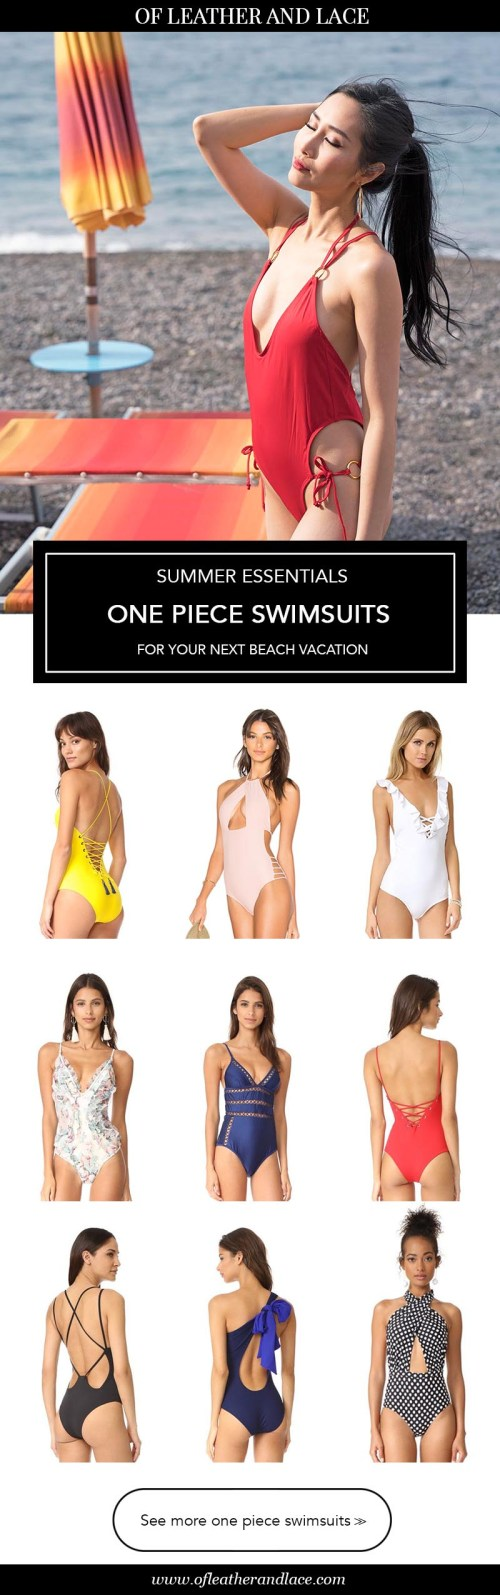 16 Gorgeous One Piece Swimsuits for Your Next Beach Vacation | Fashion and Travel Blog: Of Leather and Lace